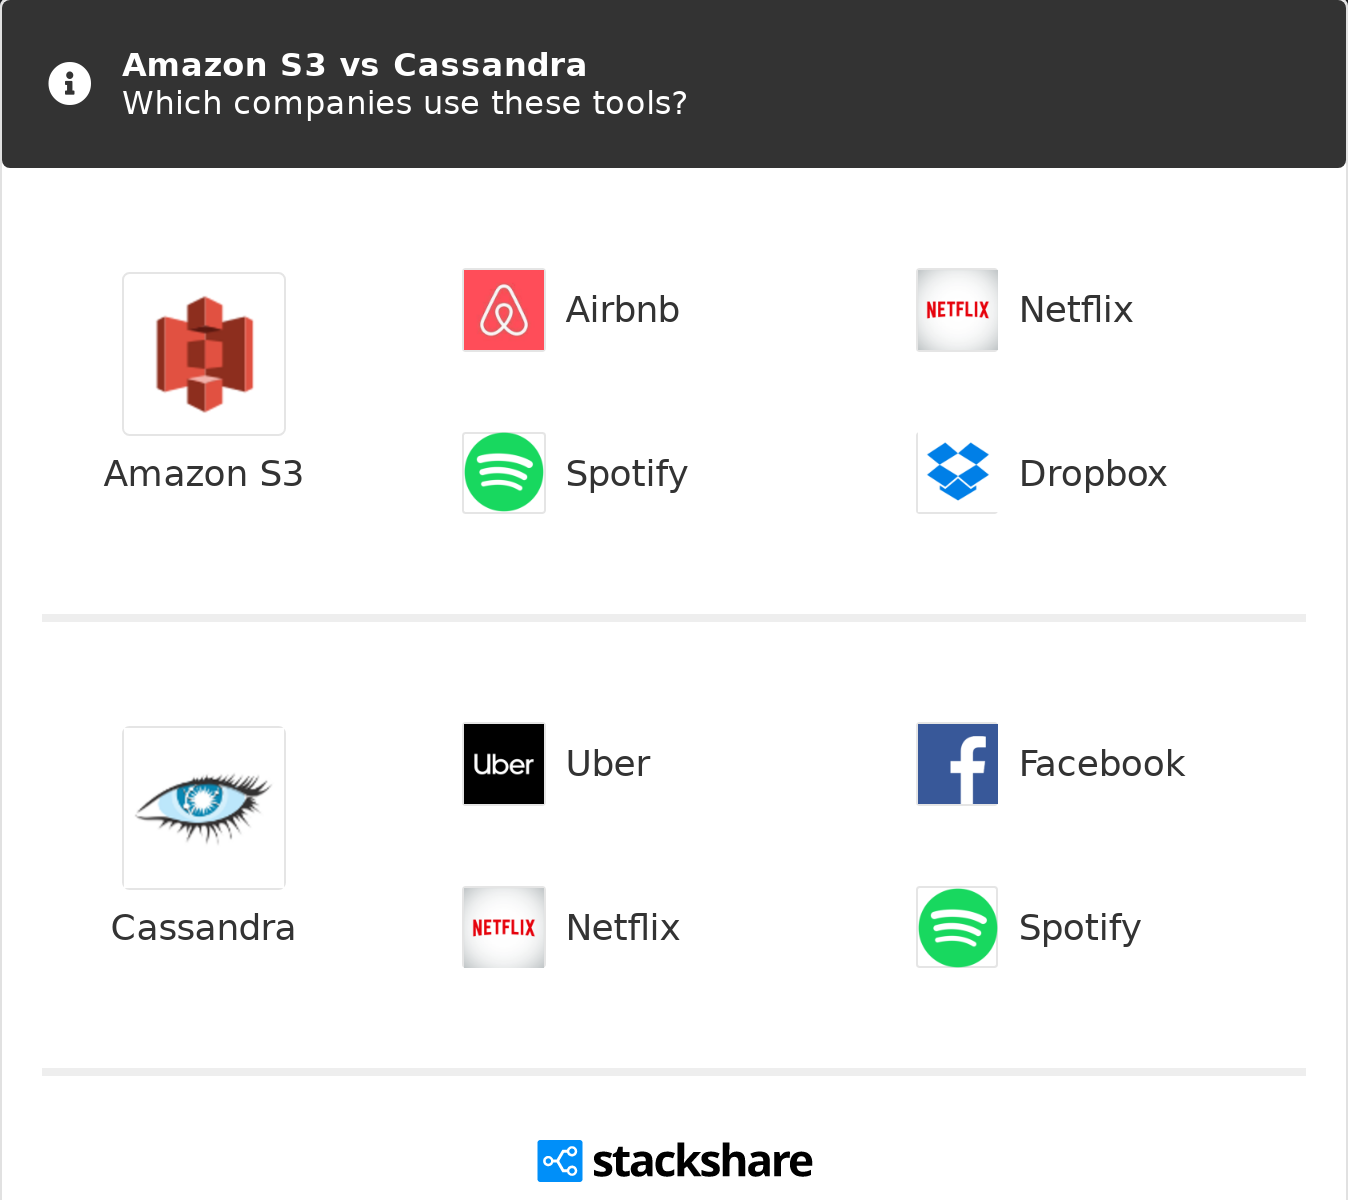 Amazon S3 vs Cassandra   What are the differences?